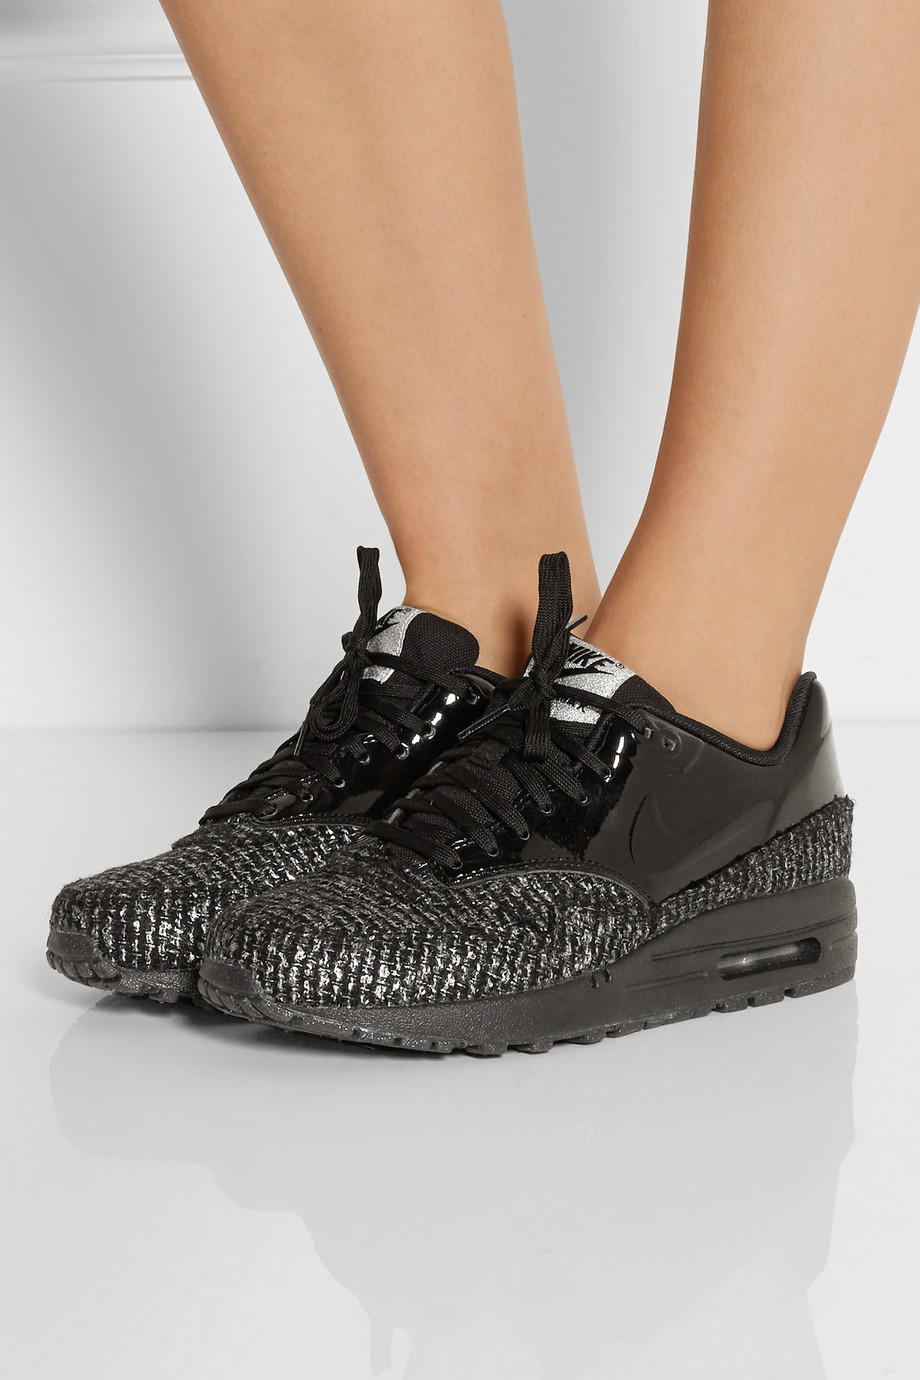 Porter Nike Bouclé 1 From And A Max Metallic Air Net qxURZg